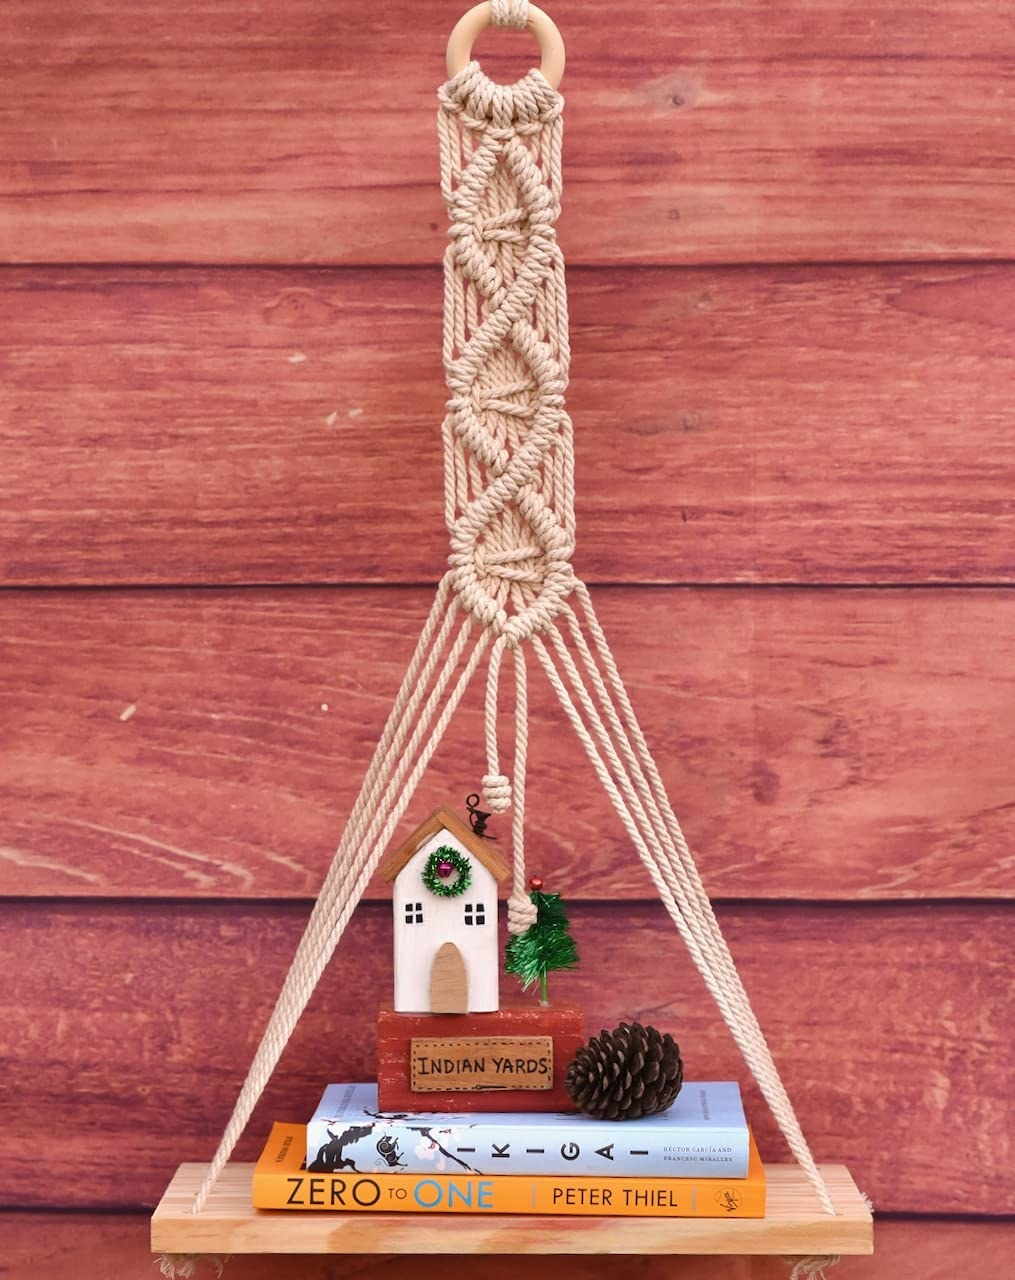 A macrame wall hanging with a wooden shelf holding a few books and showpieces